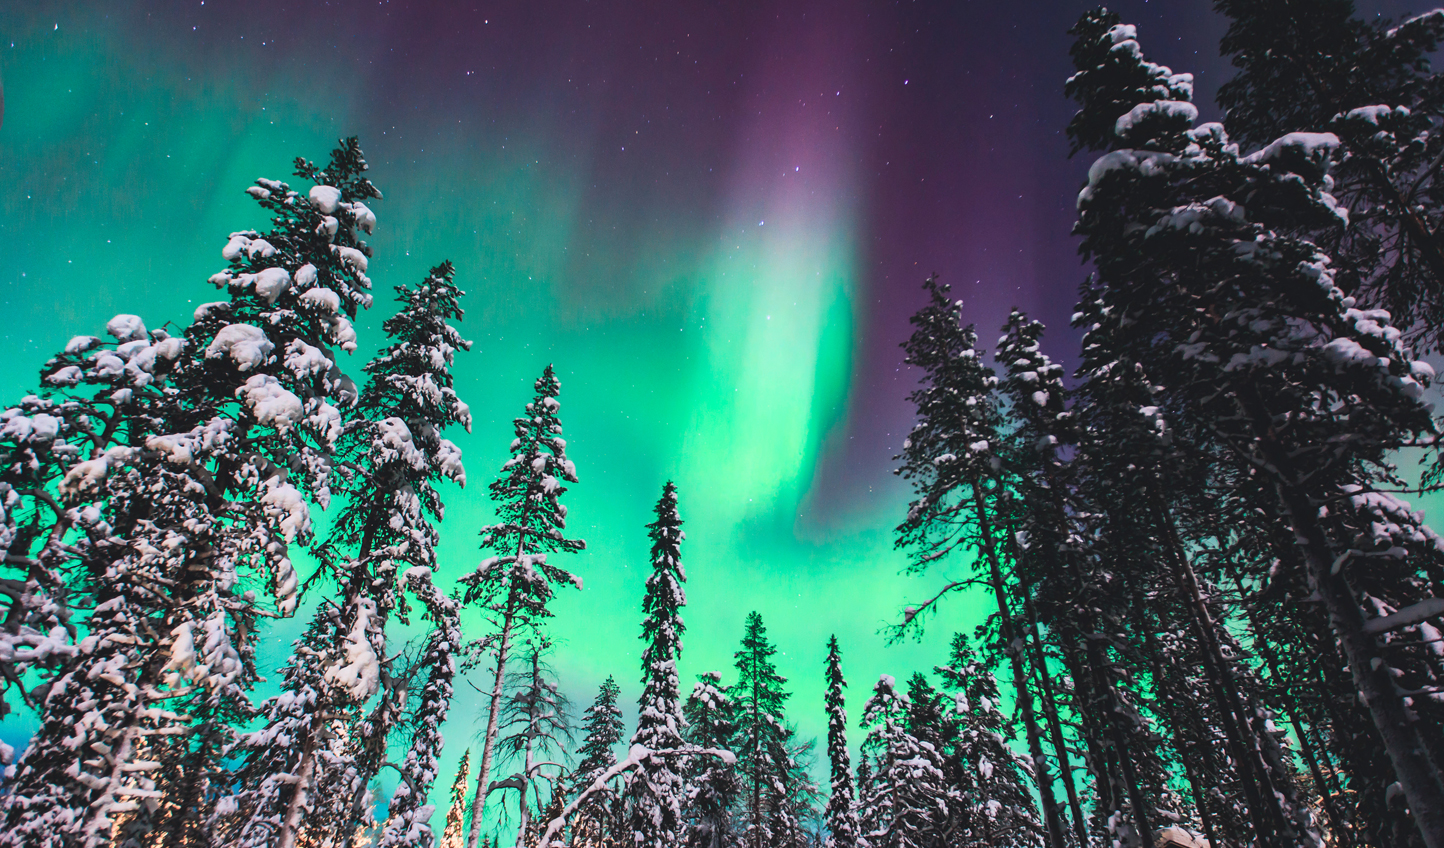 Chase the Northern Lights through the forest